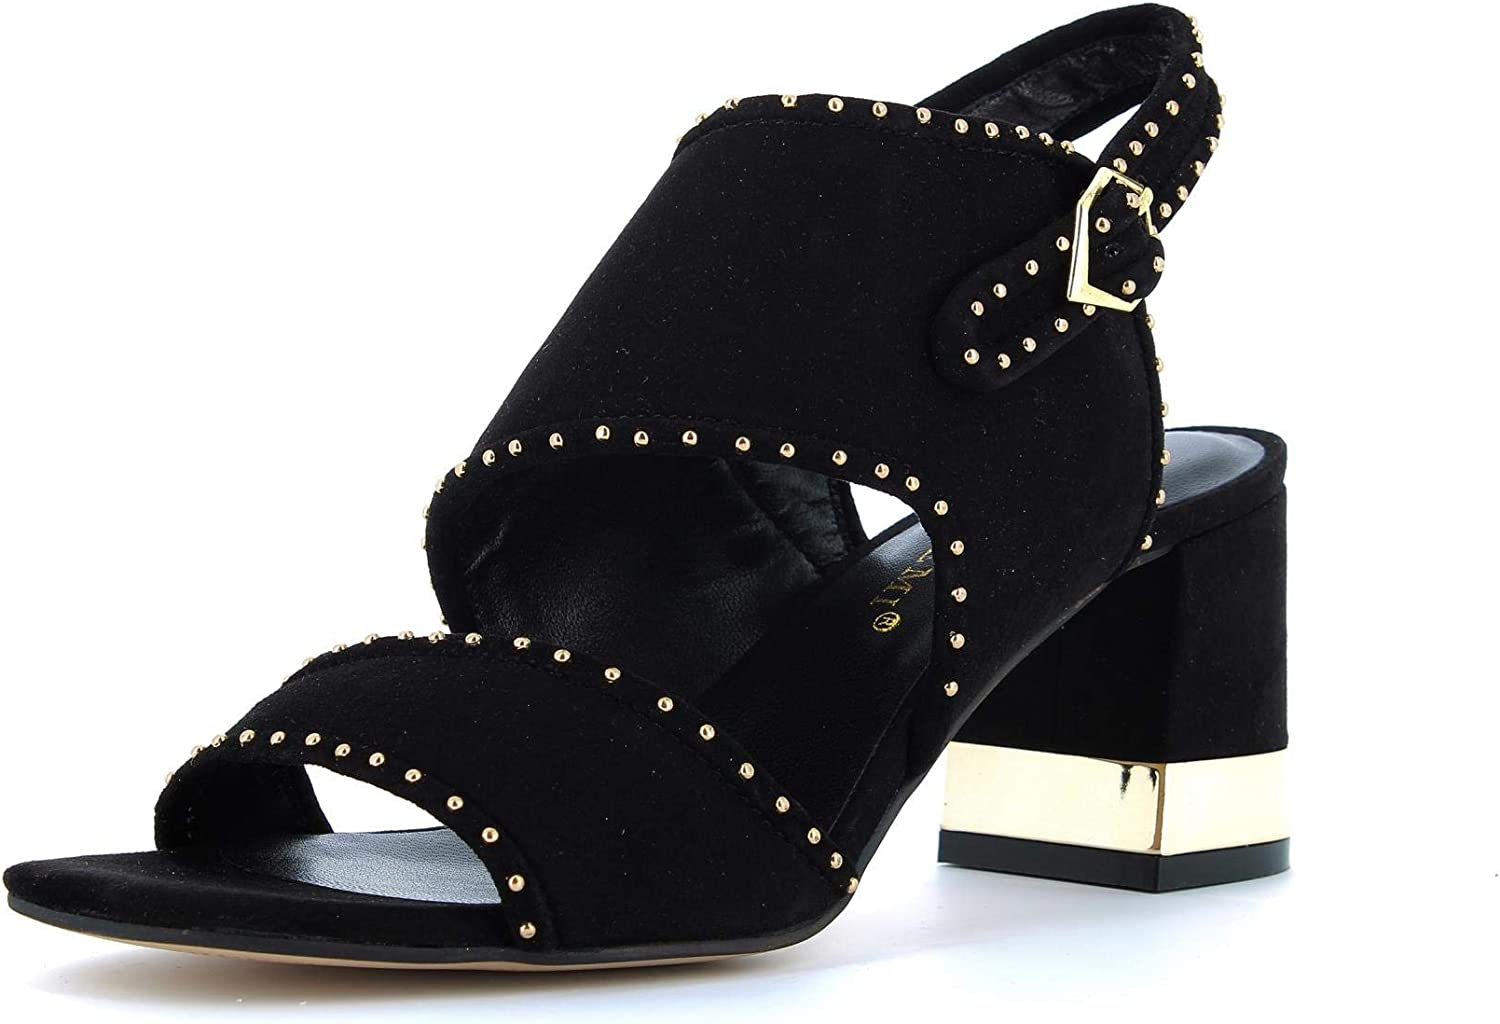 BRUNO PREMI shoes women sandals with heel BW1702P BLACK size 36 Black